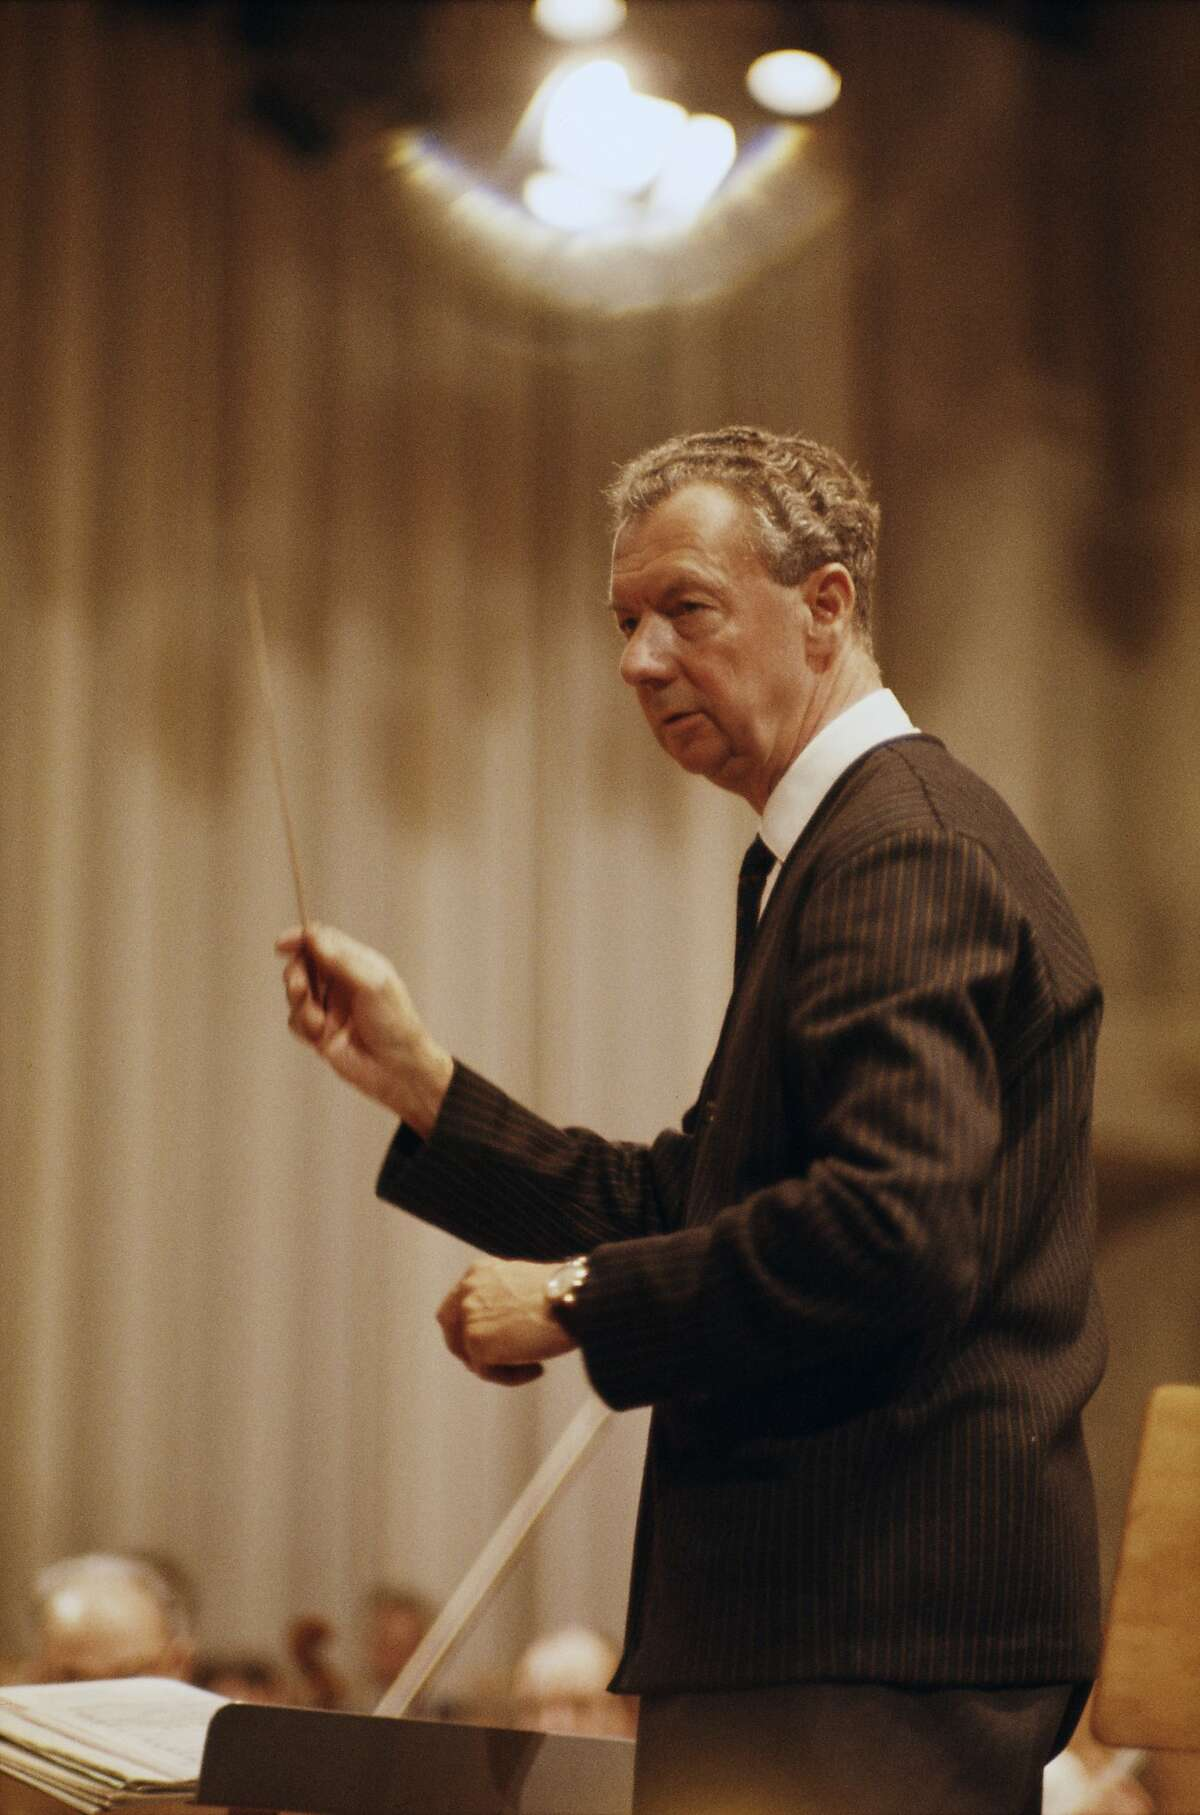 English composer Benjamin Britten (1913 - 1976) conducting, circa 1965.